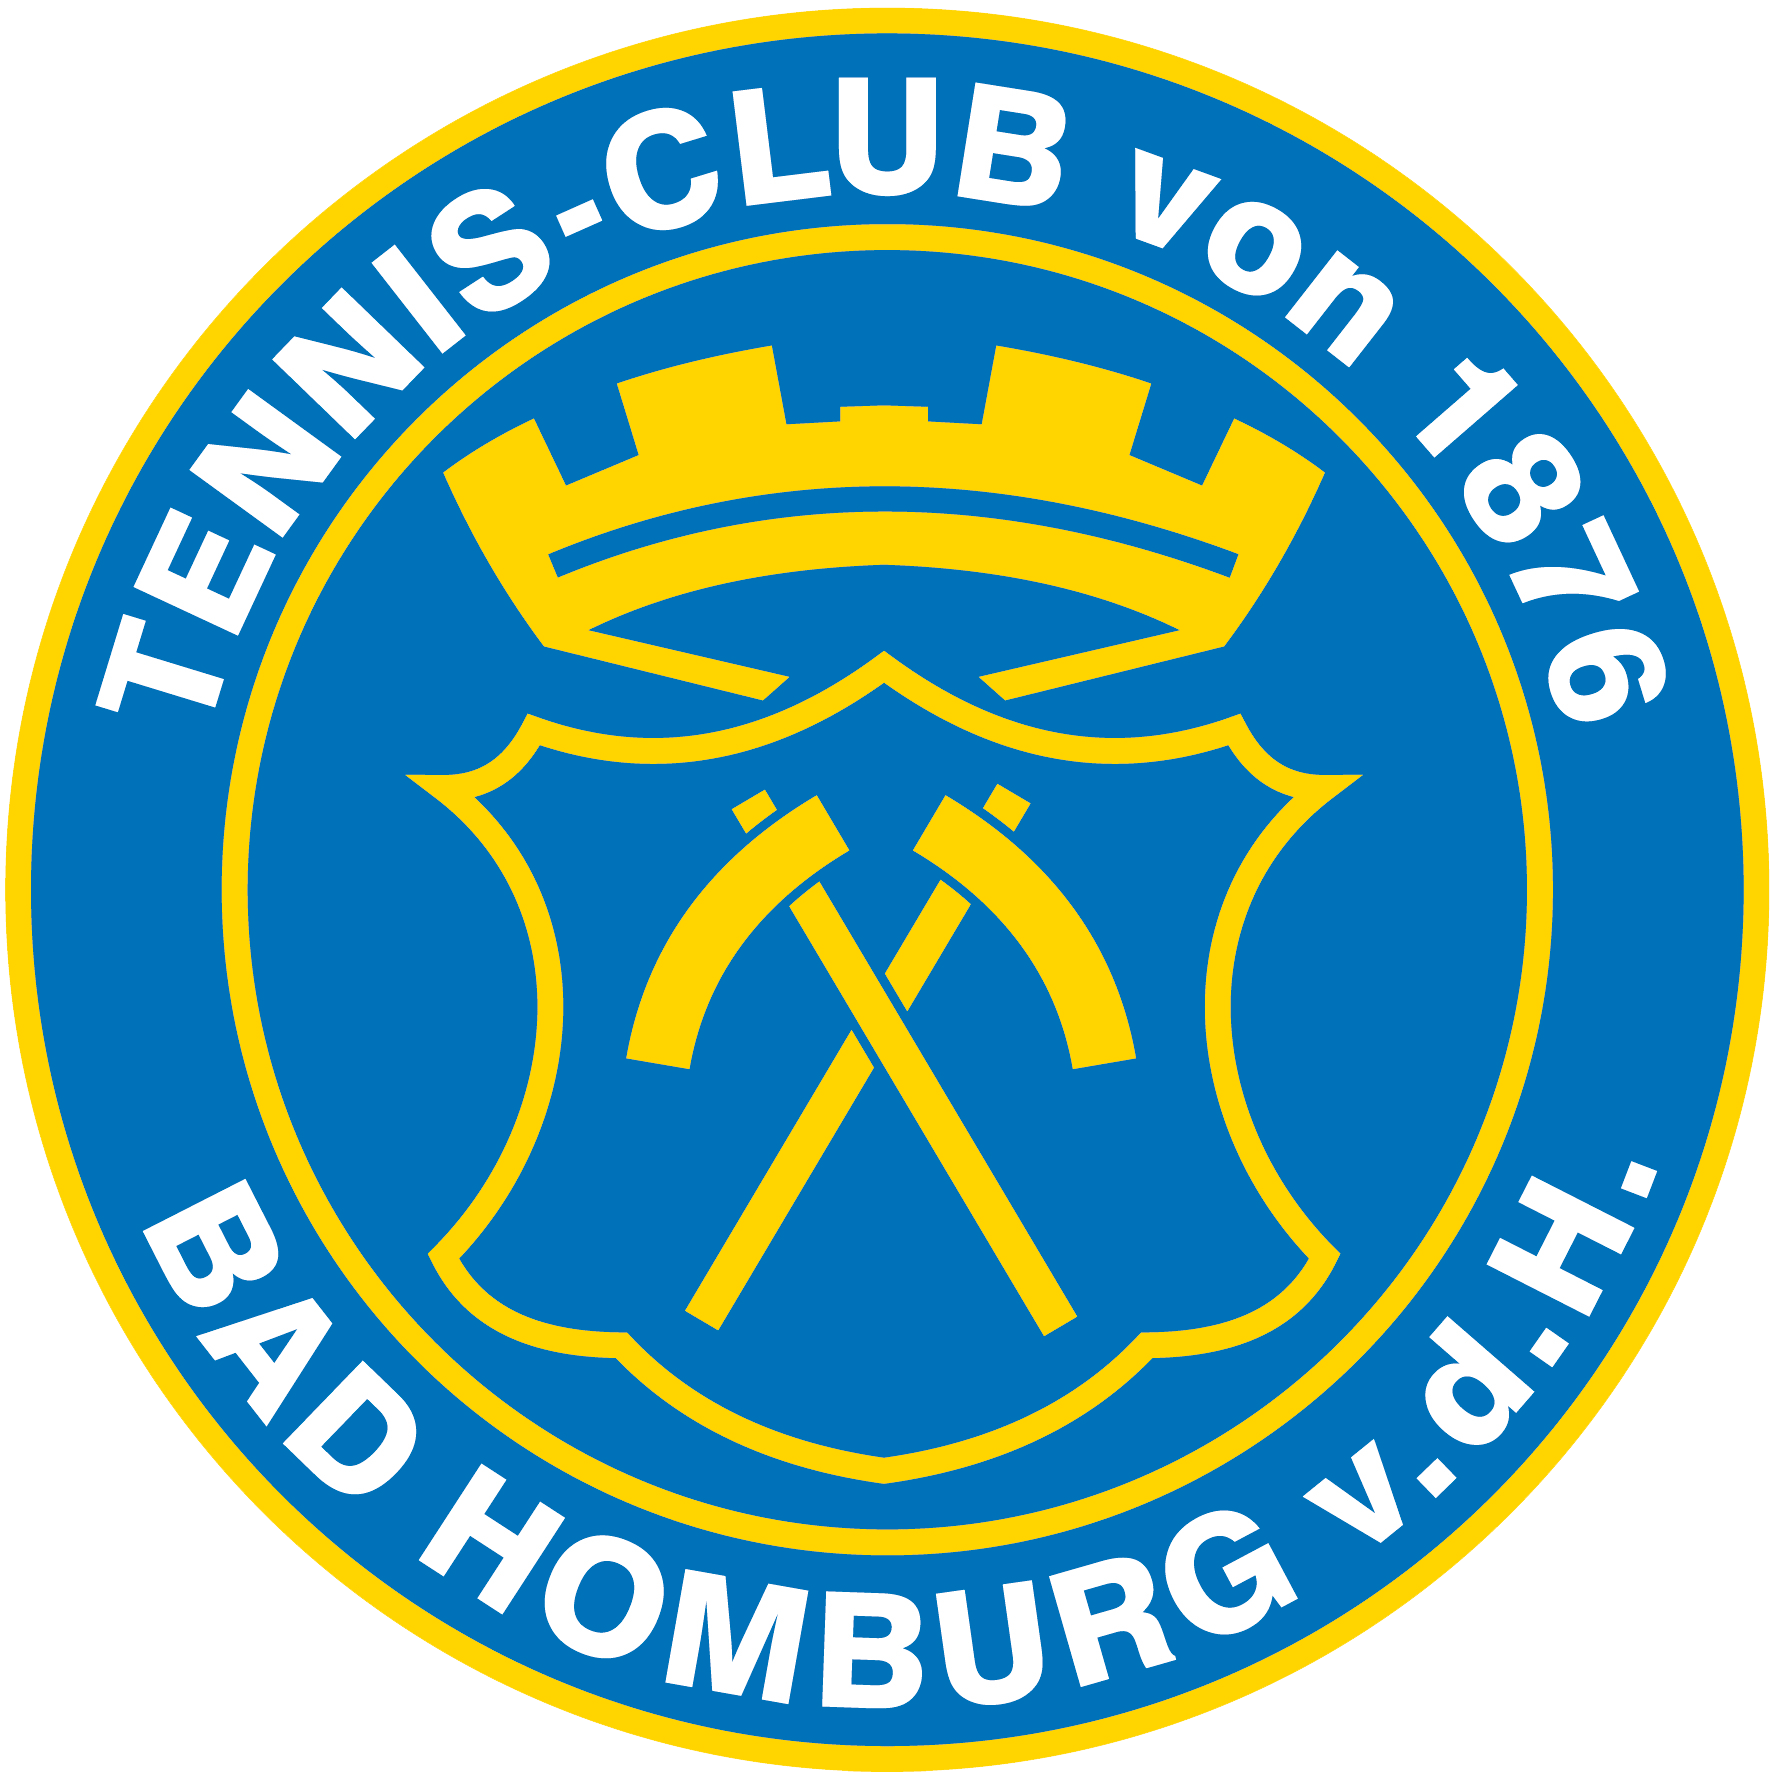 TC Bad Homburg Logo 01